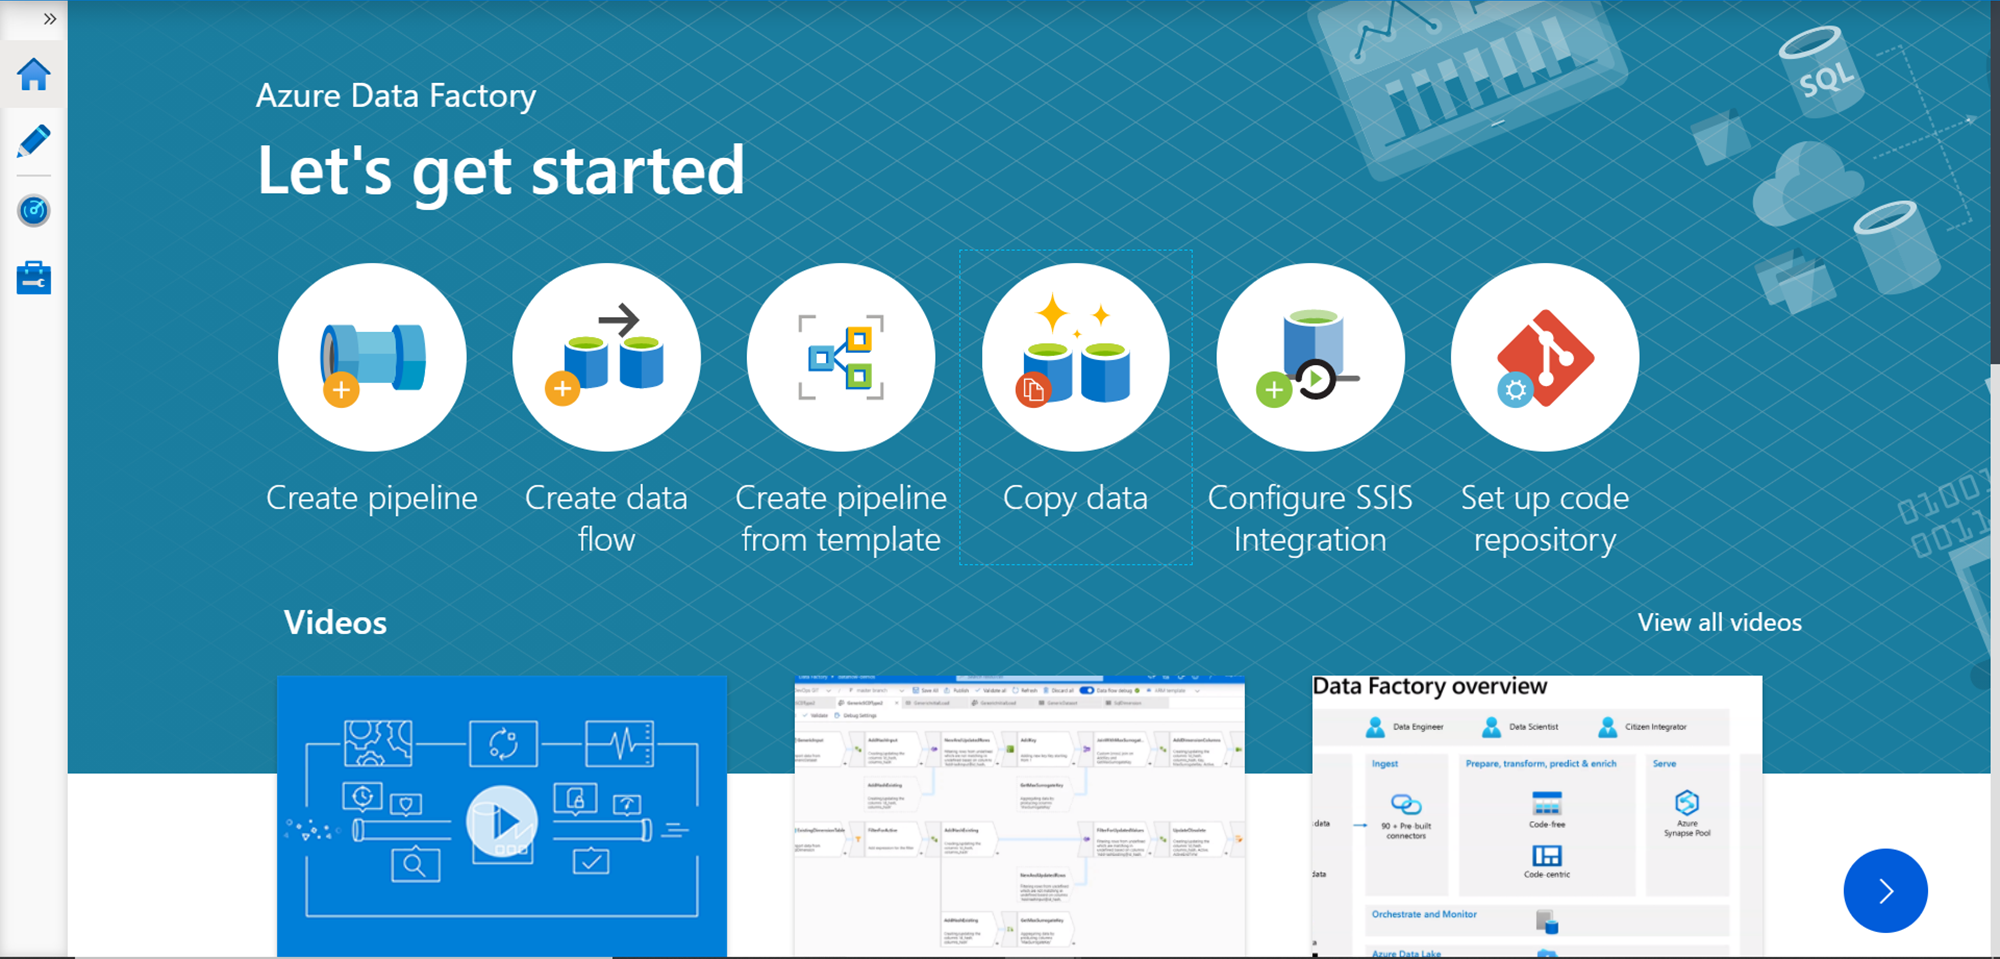 https://s33046.pcdn.co/wp-content/uploads/2021/08/data-factory-portal-on-azure.png